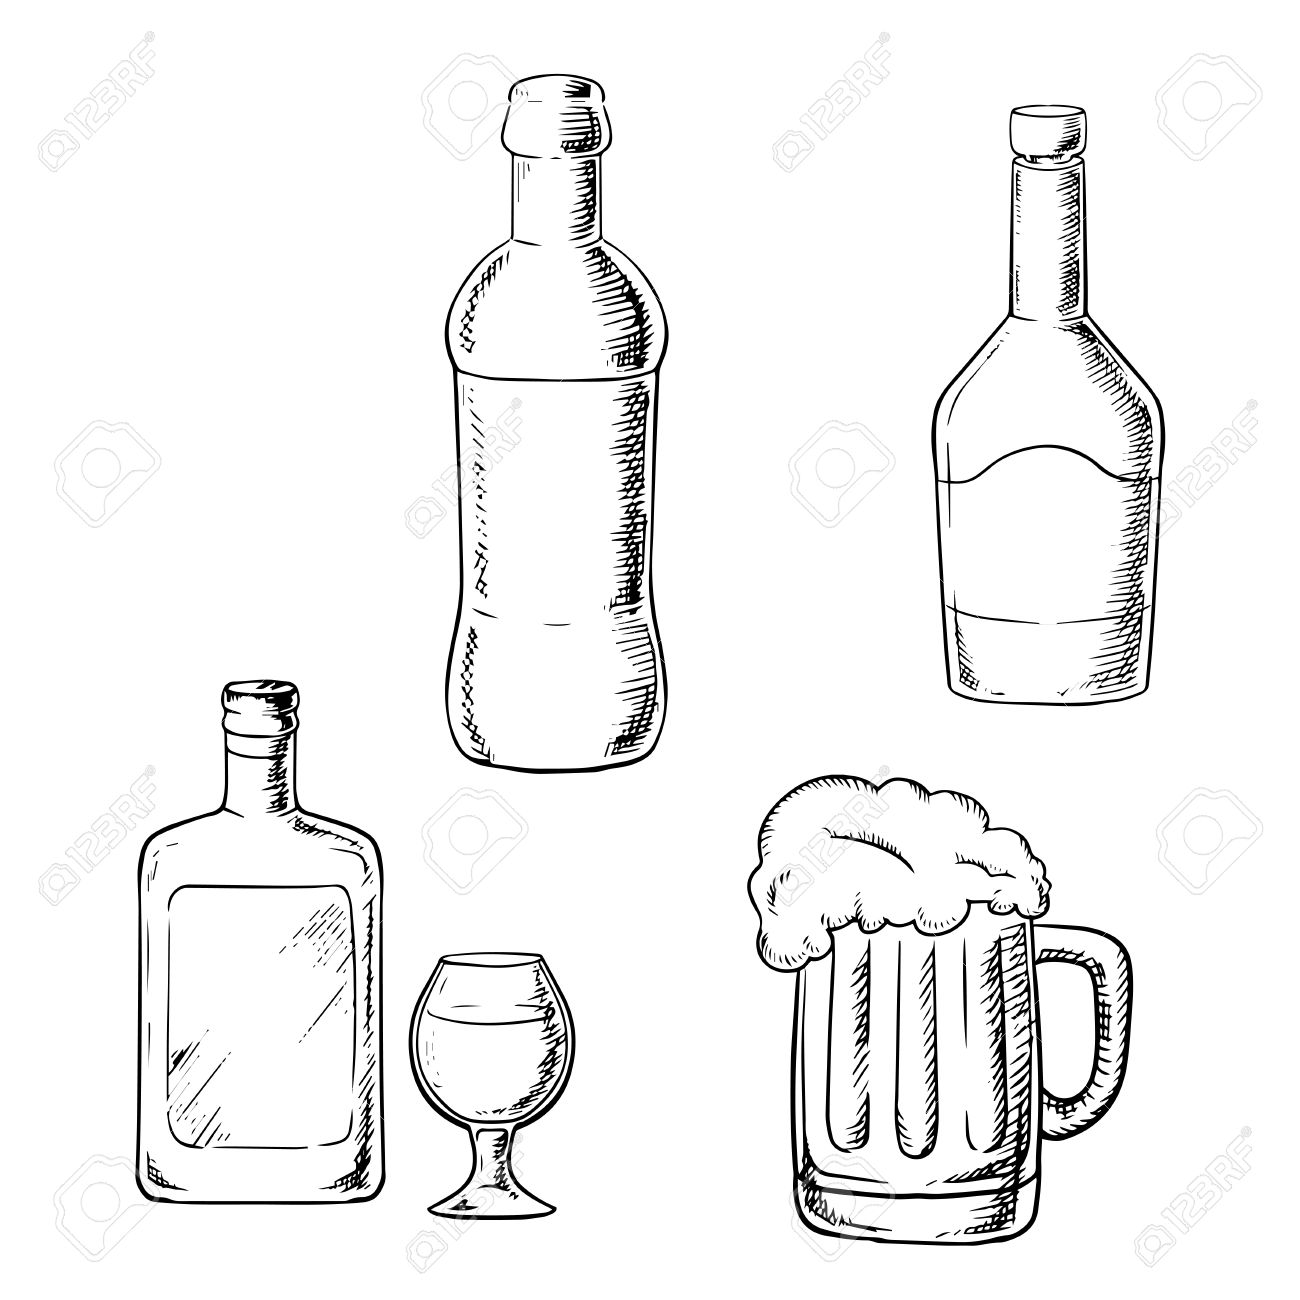 1300x1300 Alcoholic Beverages With Bottle Of Wine, Liquor, Whiskey, Glass